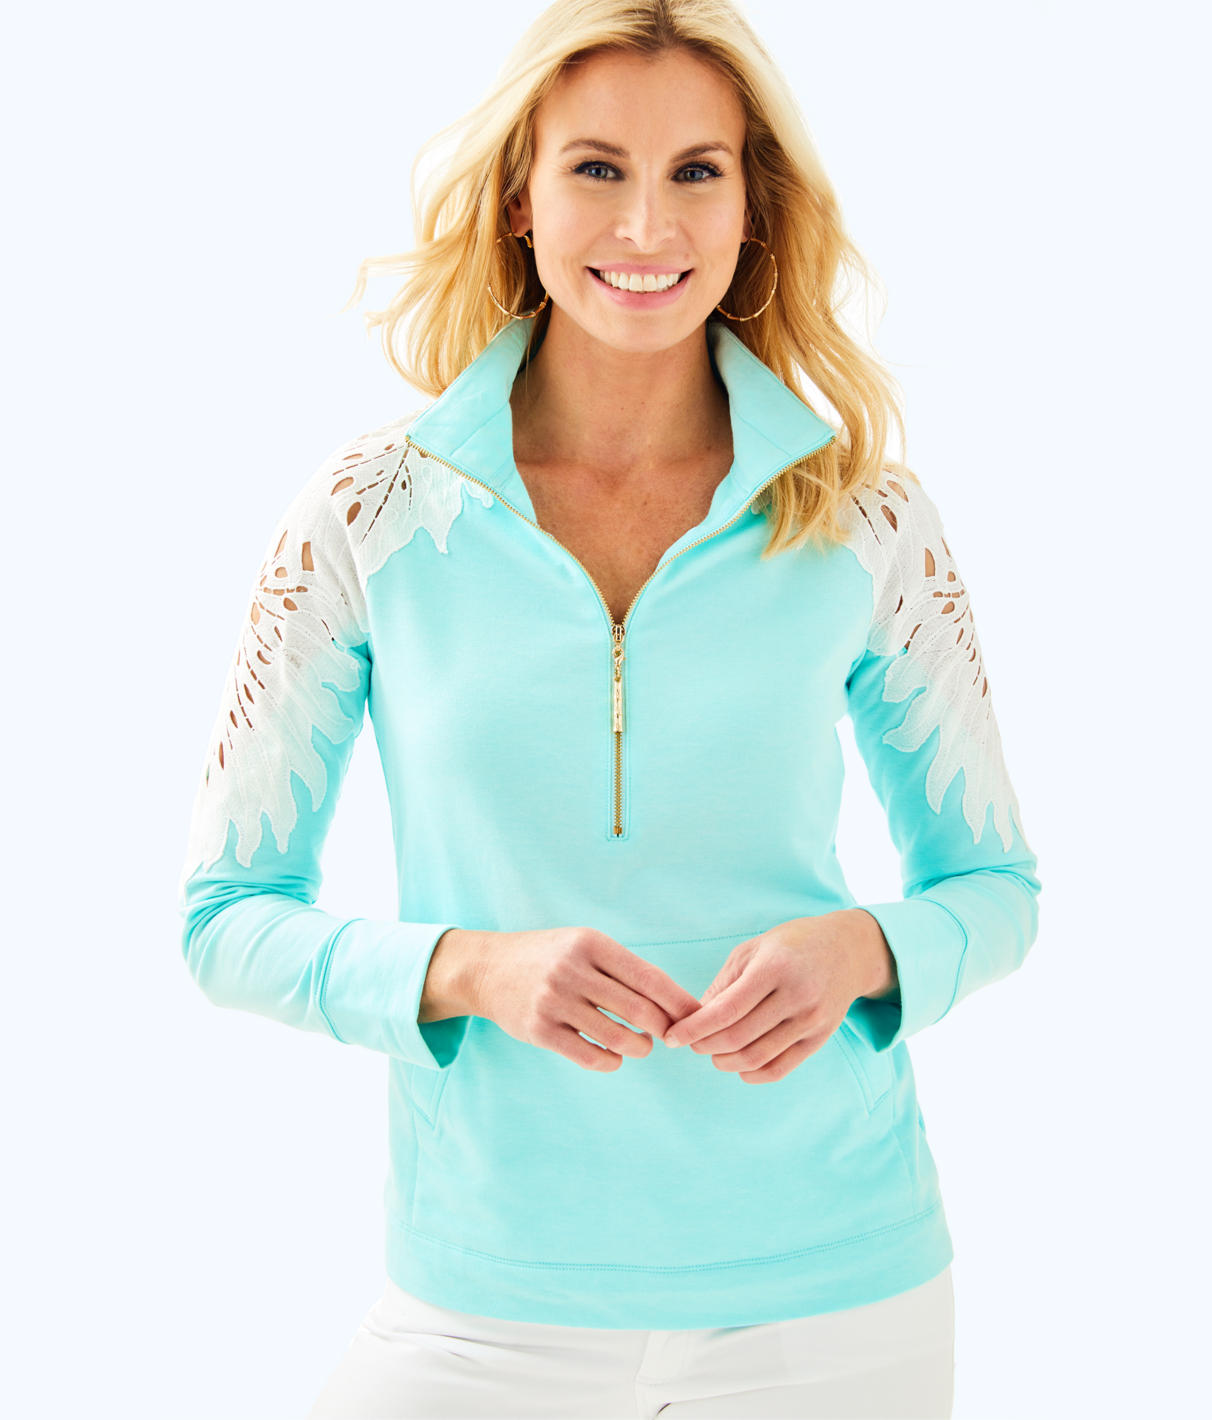 Lilly Pulitzer Lilly Pulitzer Womens Skipper Popover